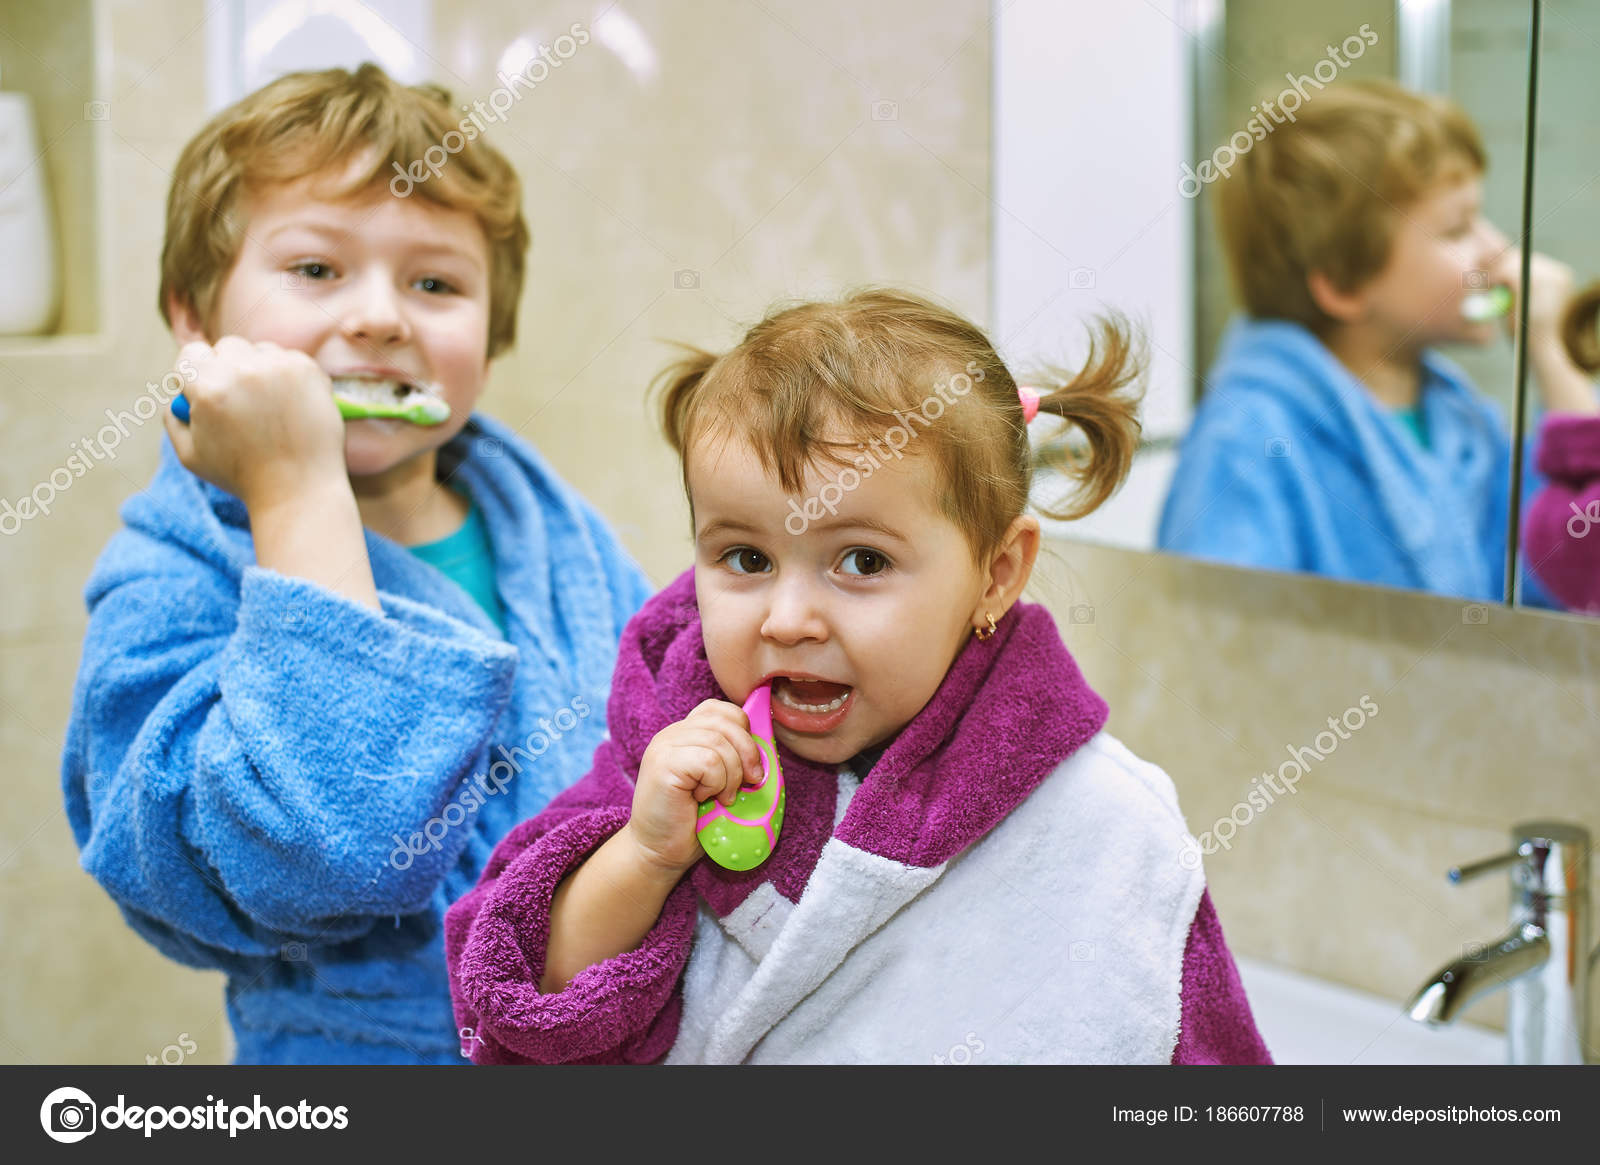 a9c5c55dec Cute Kids Bathrobes Bathroom Brushing Teeth — Stock Photo © fisher05 ...